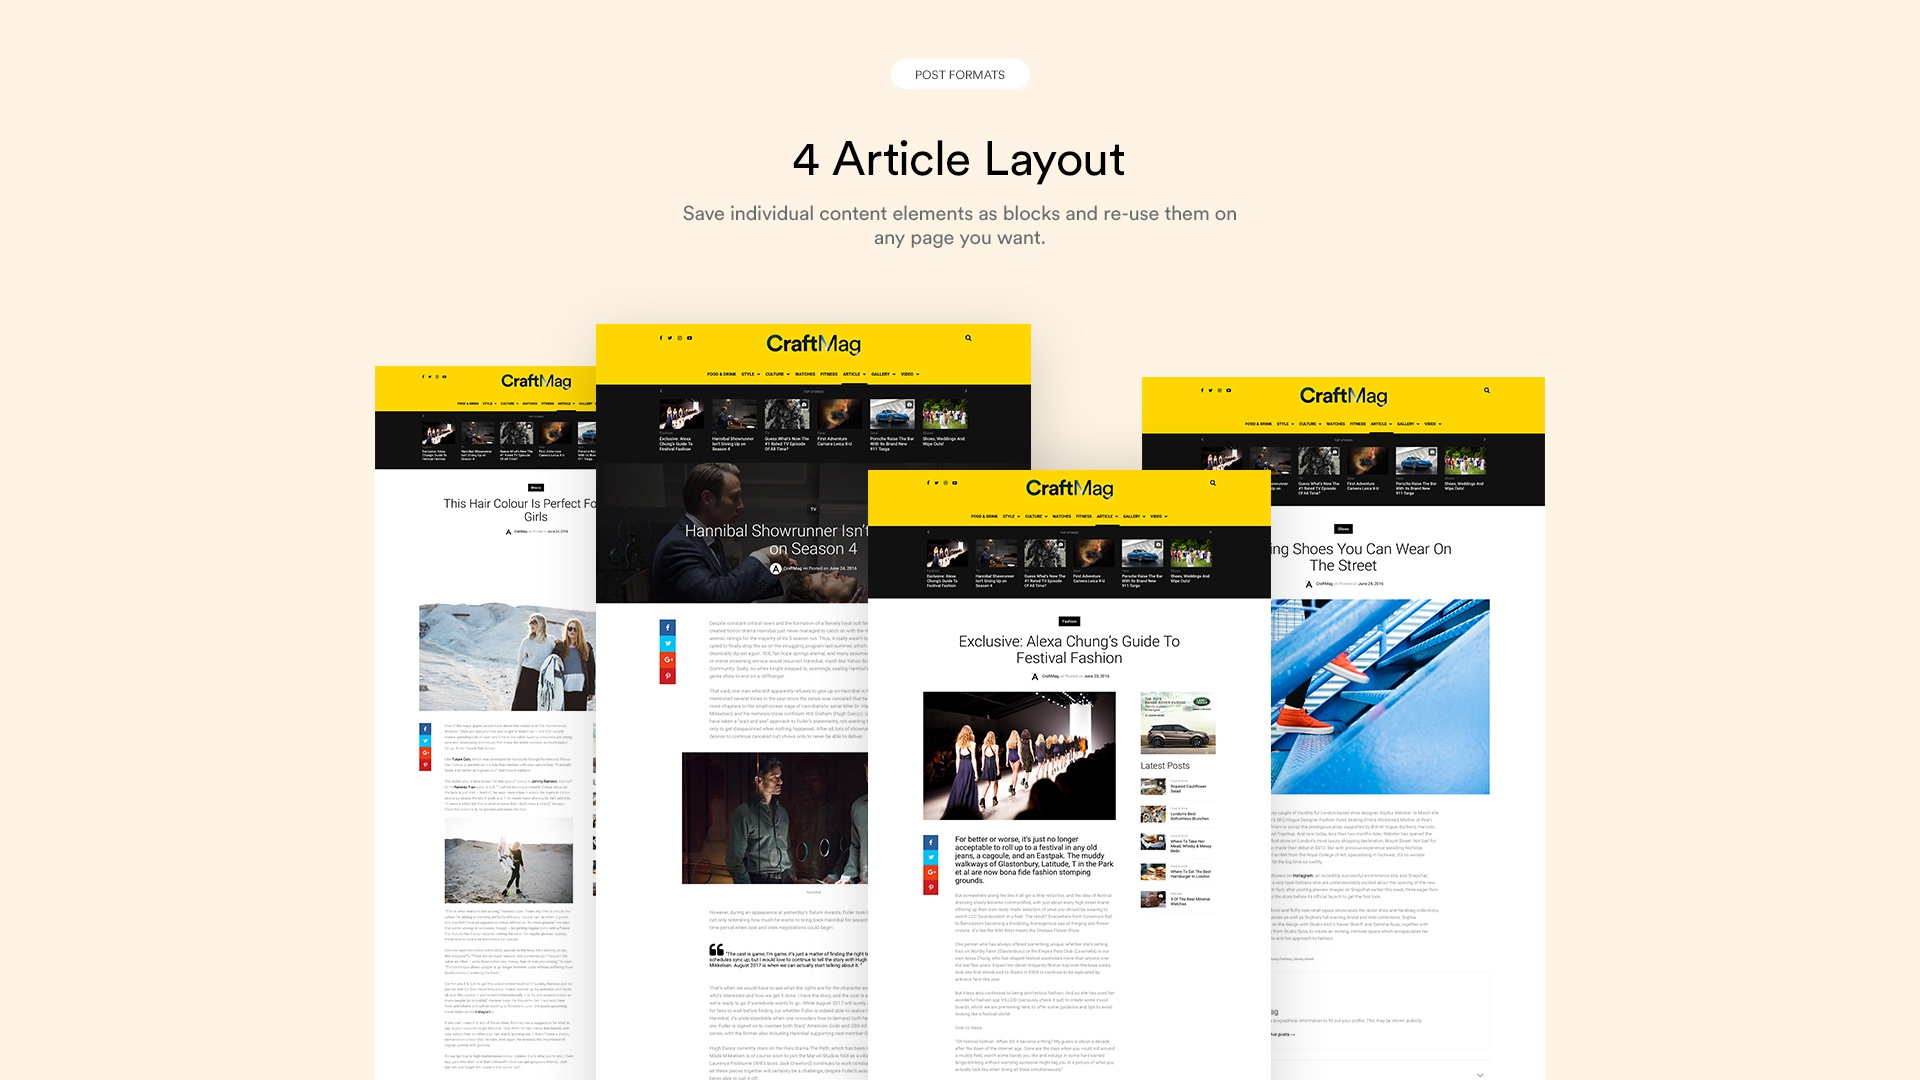 4 article layout